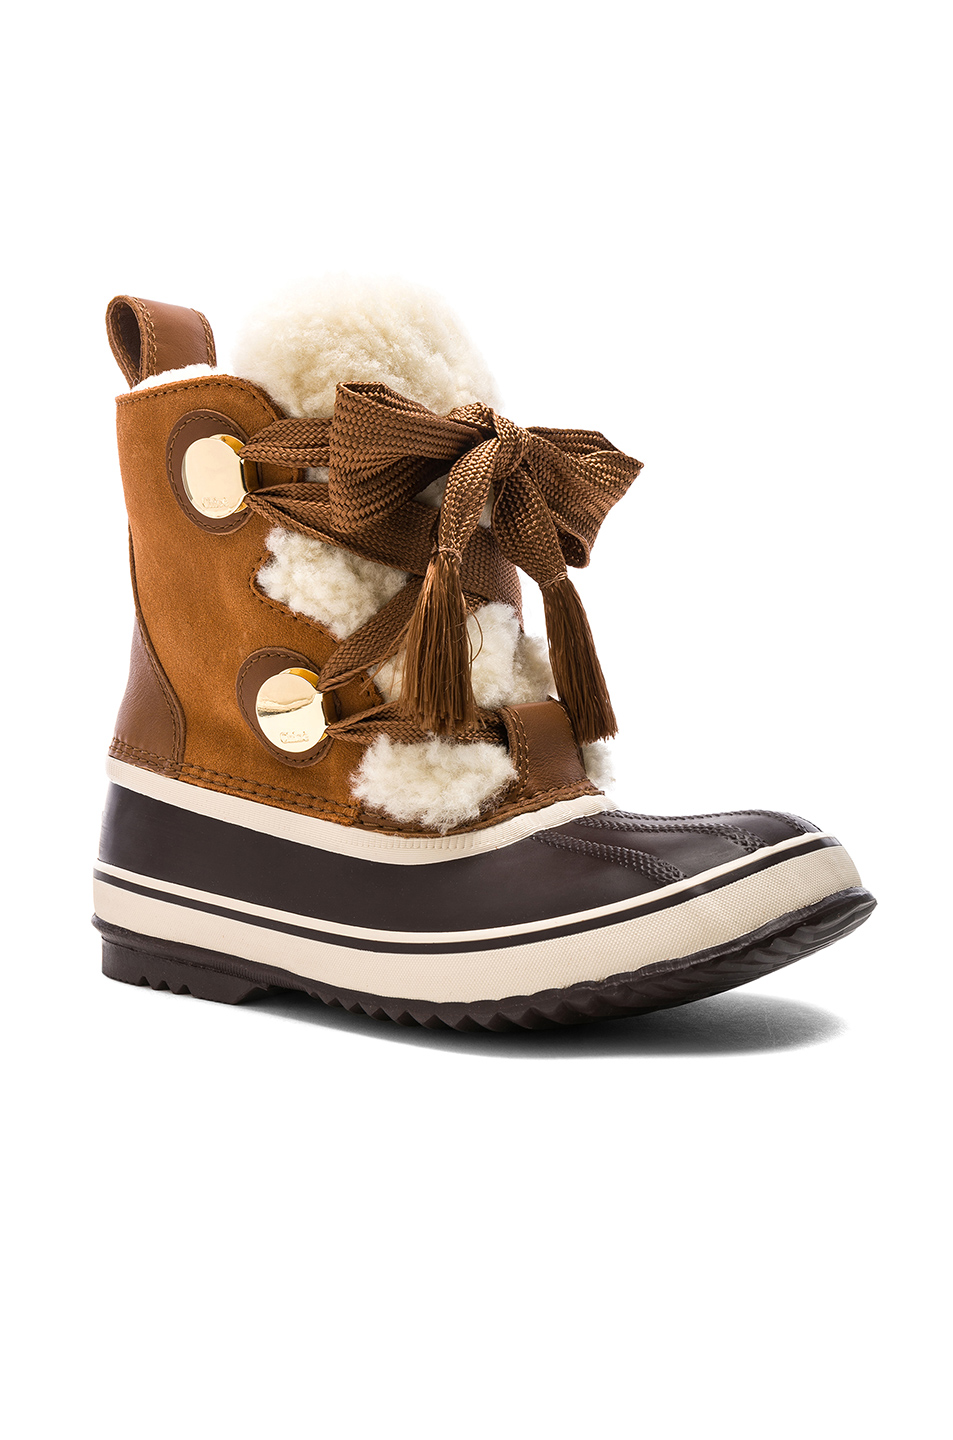 Chloe x Sorel Shearling & Suede Hiking Boots